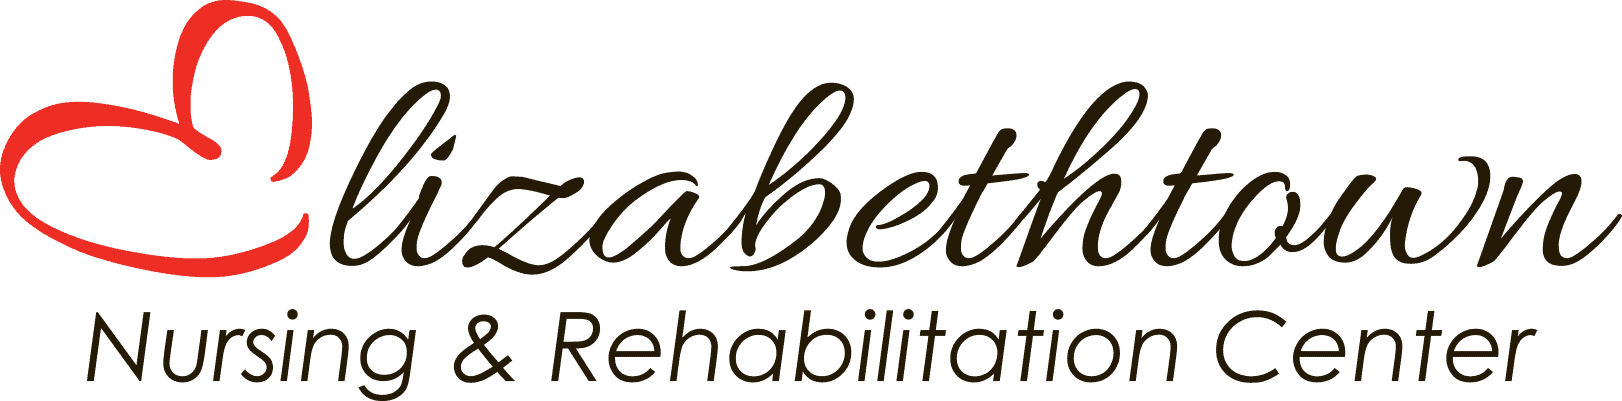 Elizabethtown Nursing and Rehabilitation Center [logo]